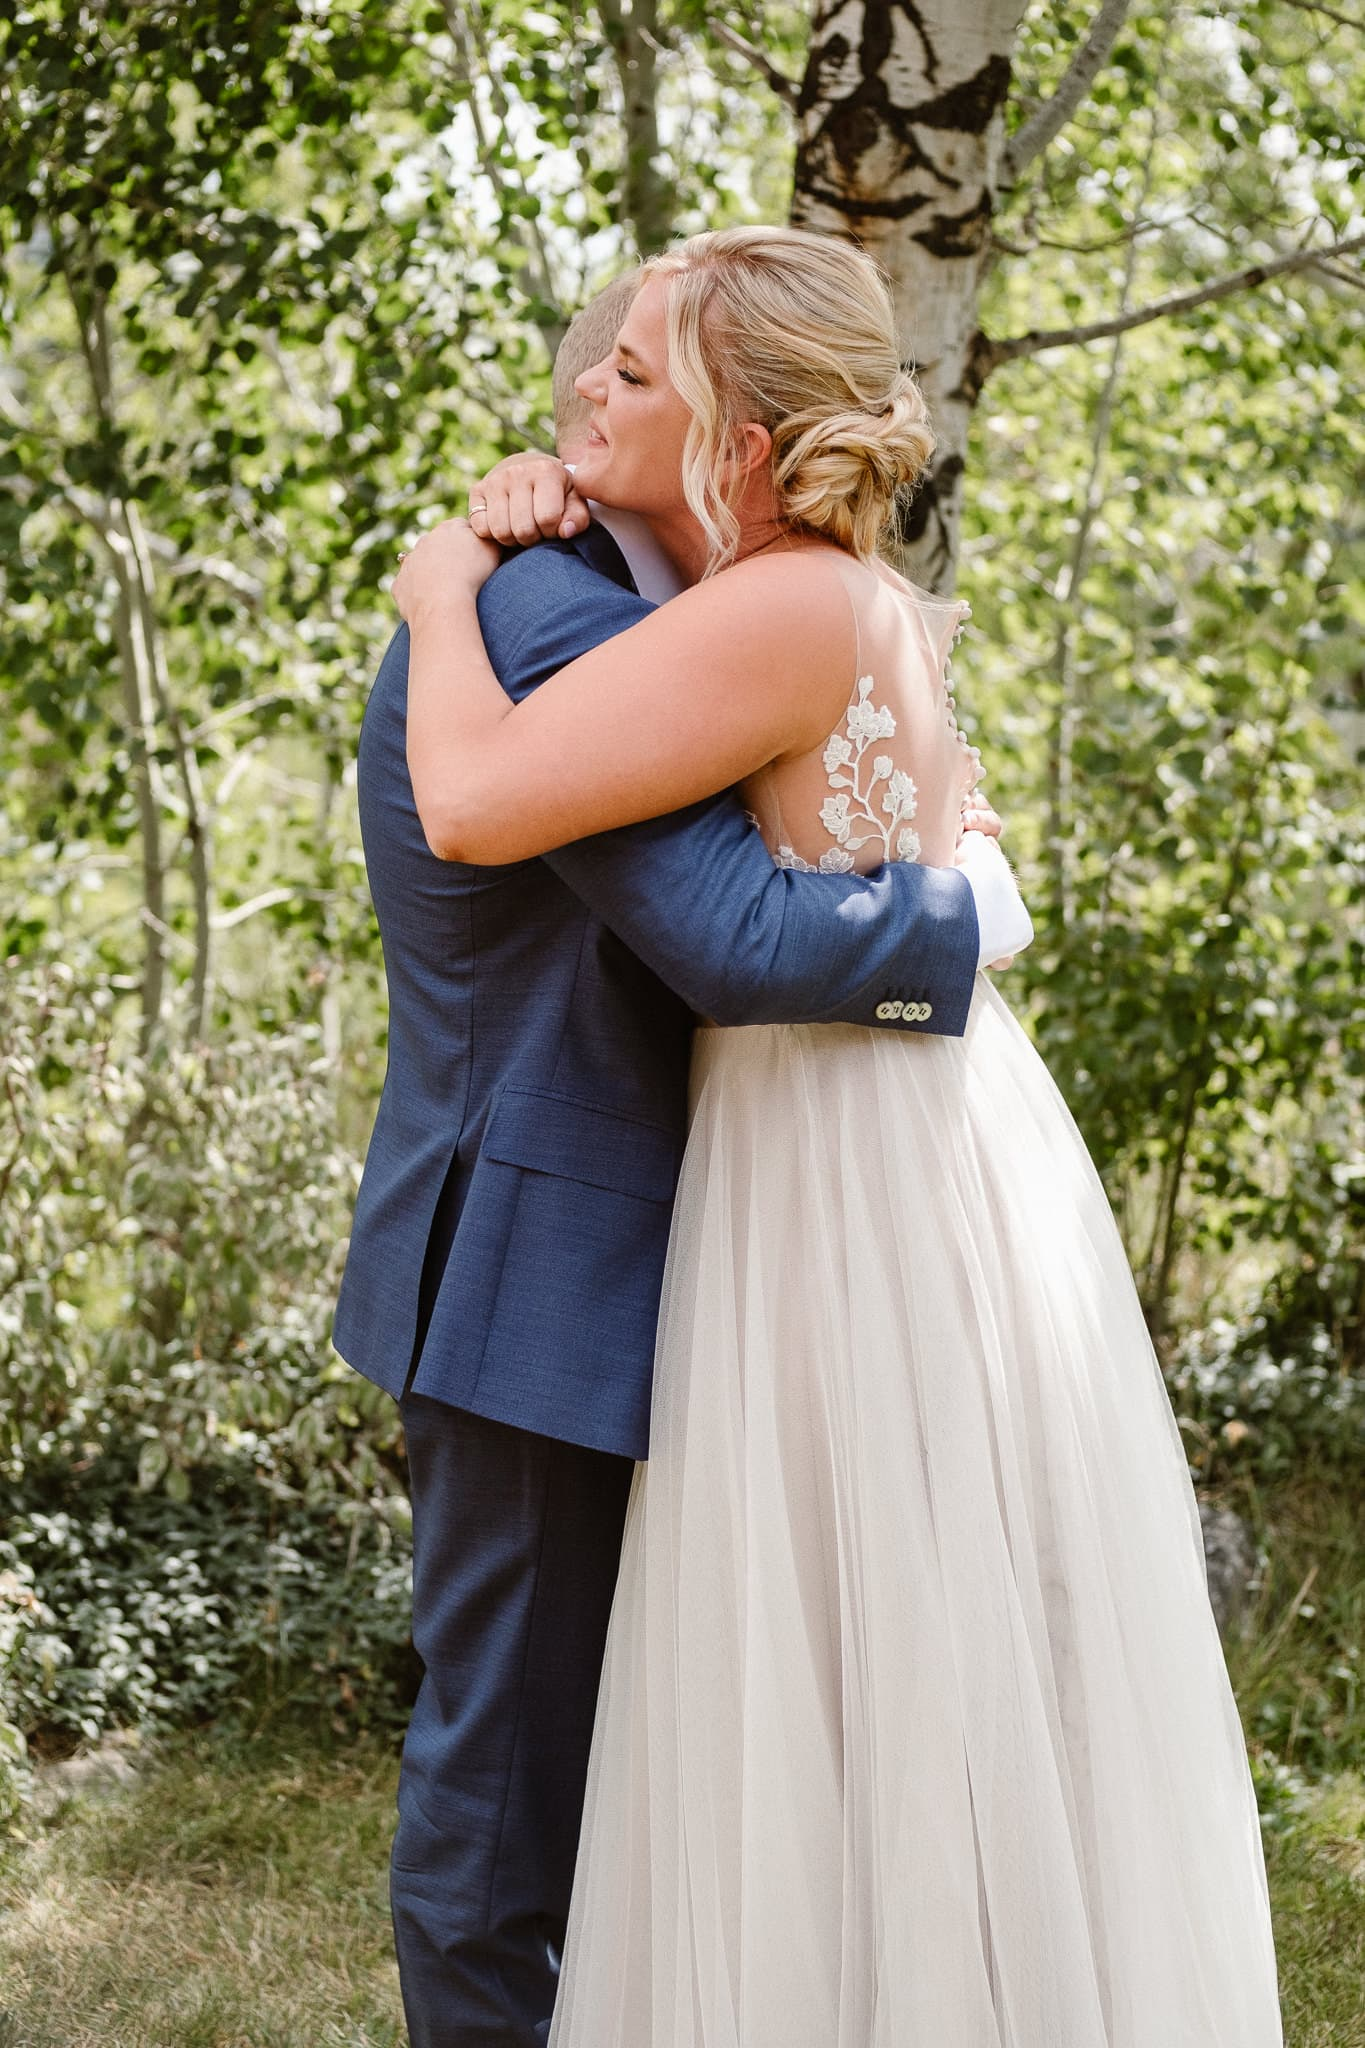 Steamboat Springs wedding photographer, La Joya Dulce wedding, Colorado ranch wedding venues, bride and groom hugging, first look,